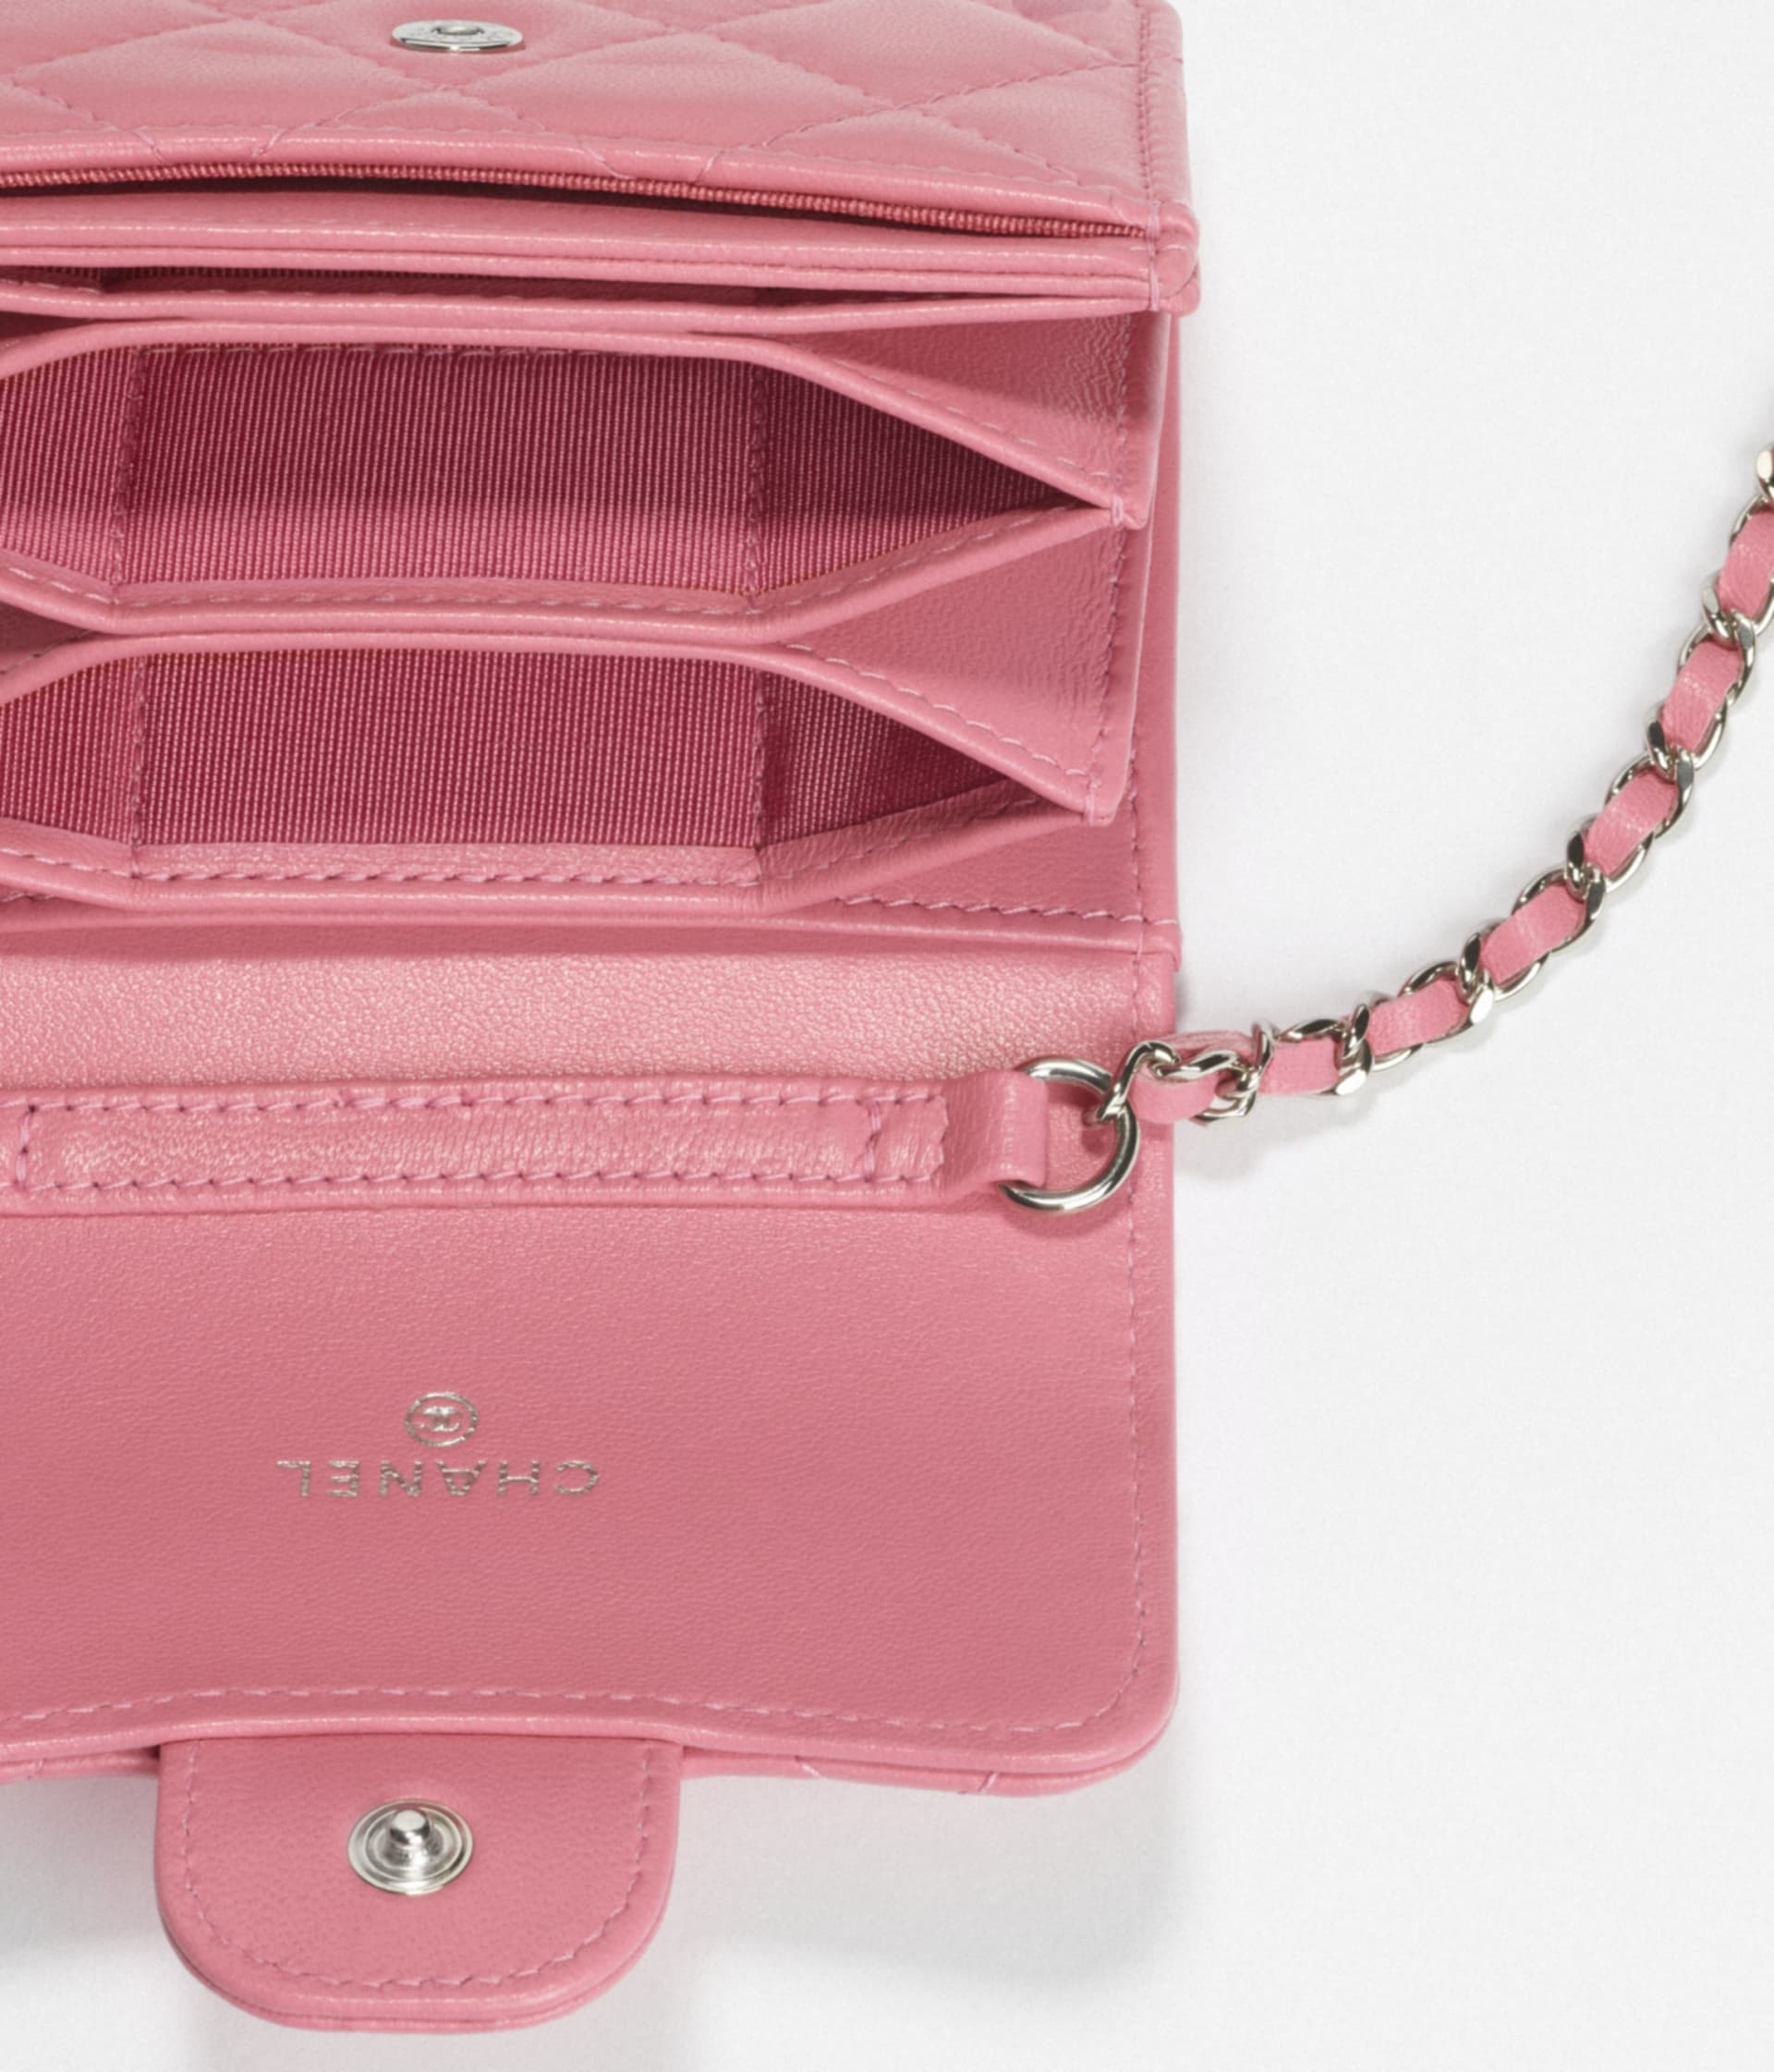 image 2 - Classic Flap Card Holder with Chain - Lambskin & Silver-Tone Metal - Light Pink